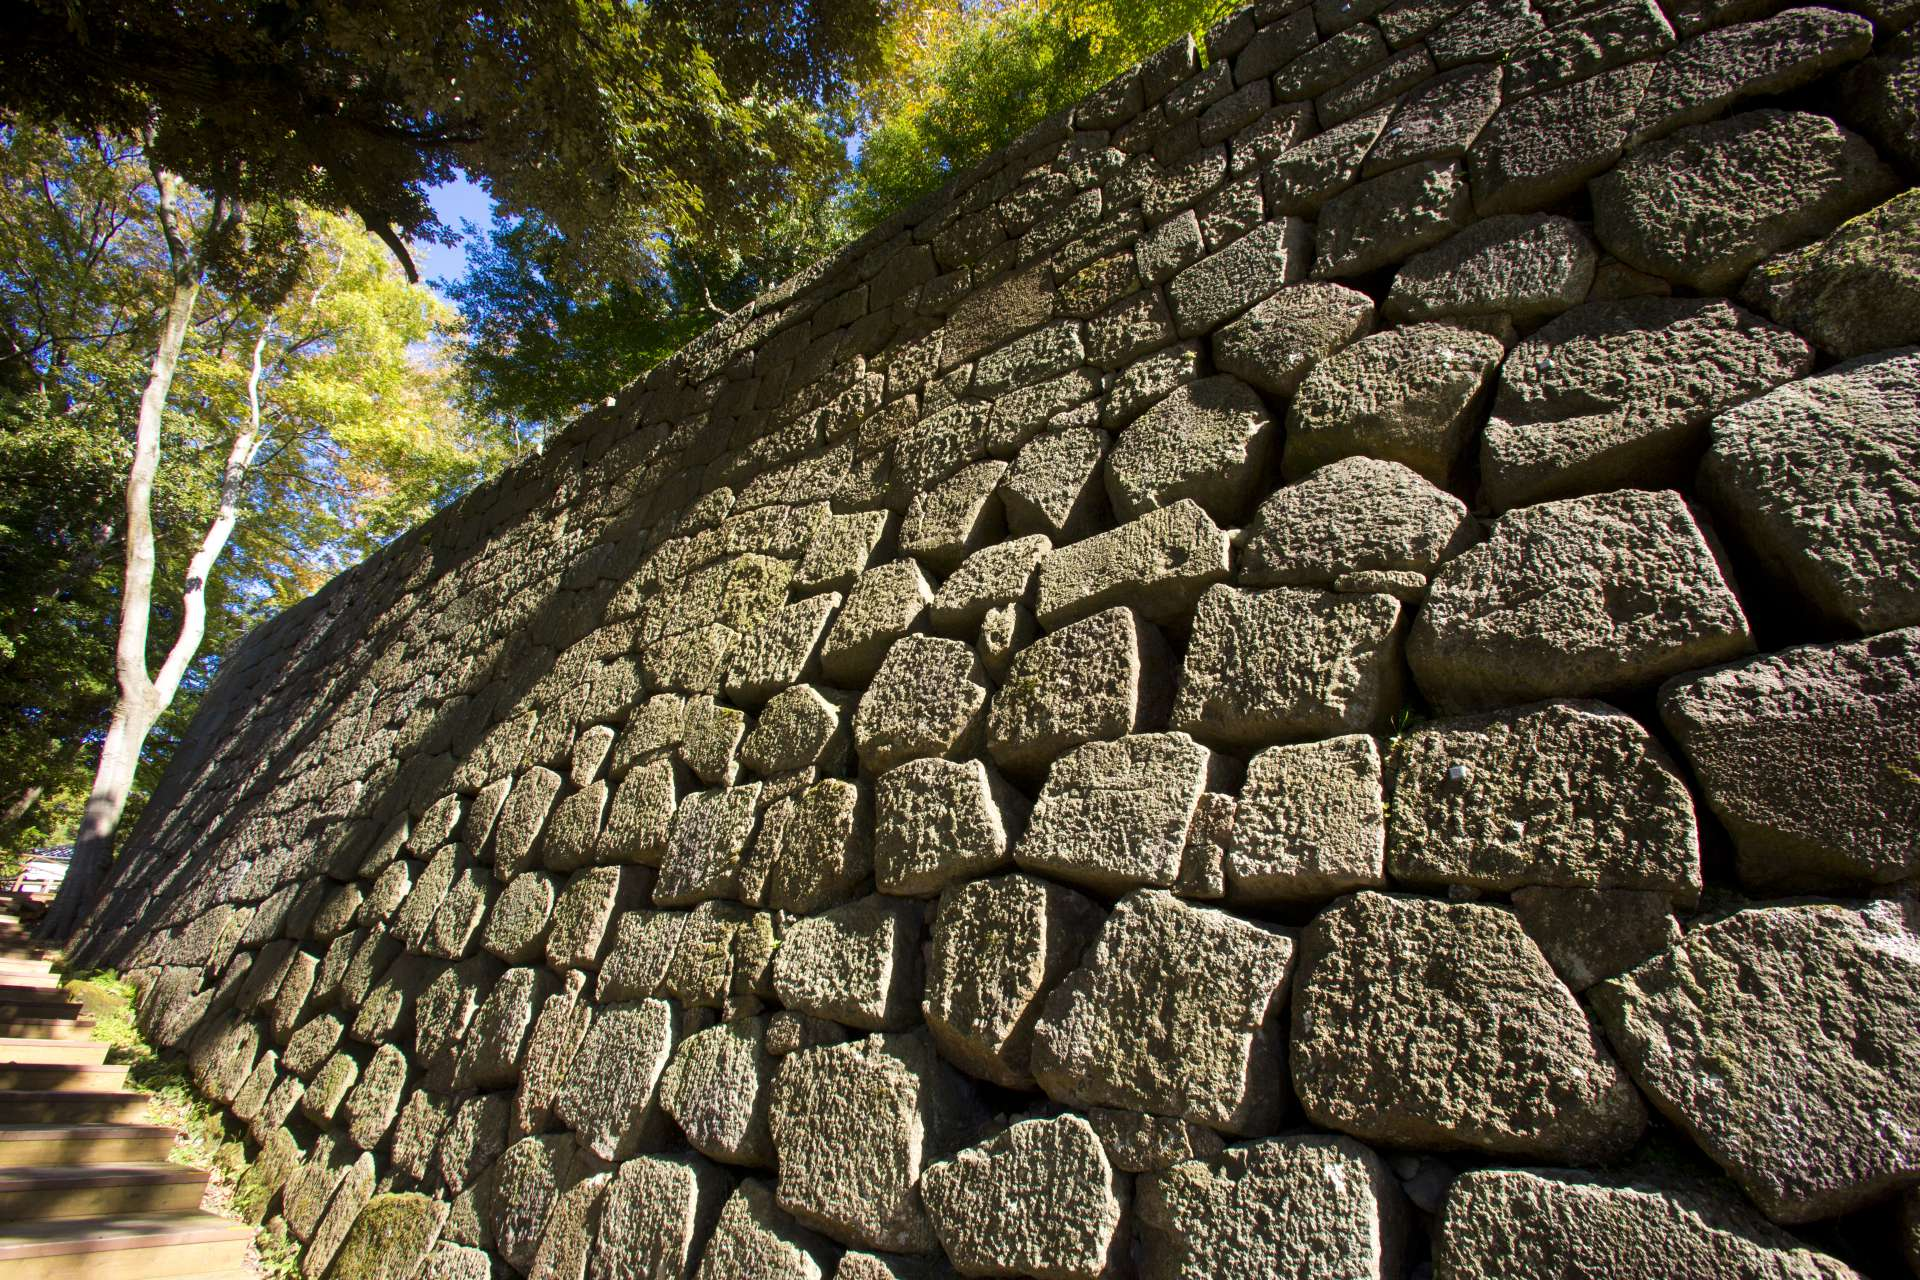 One feature of Kanazawa Castle is its variety of stone walls